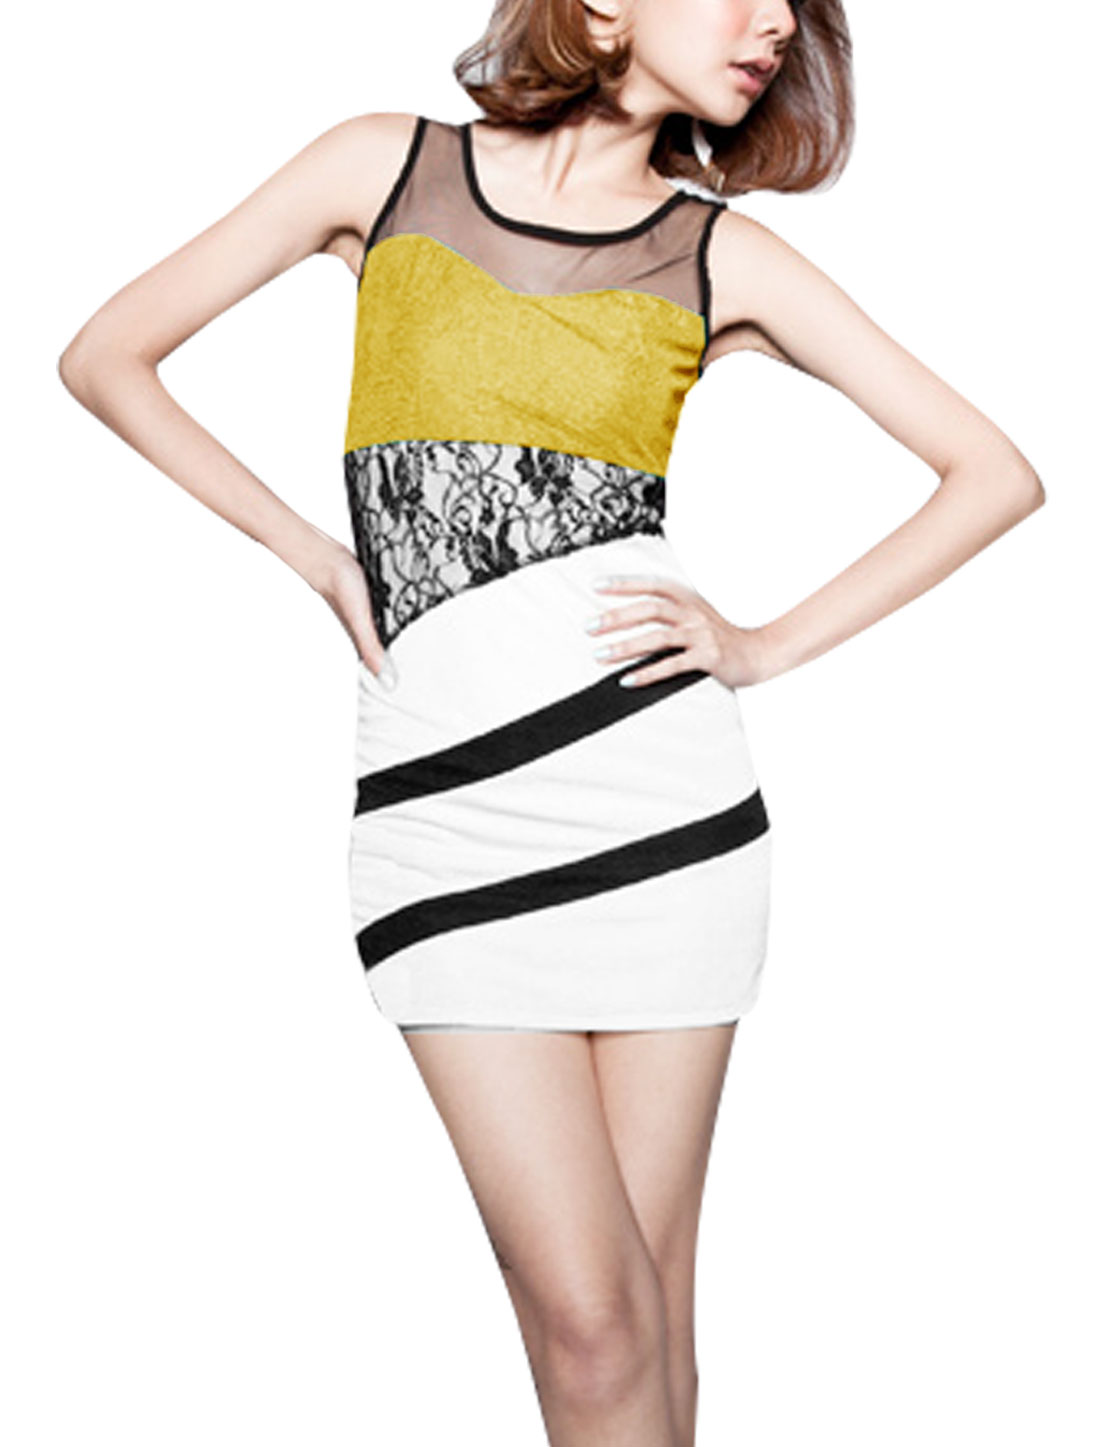 Women Scoop Neck Sleeveless Stripes Mesh Upper Form-fitting Dress Yellow XS